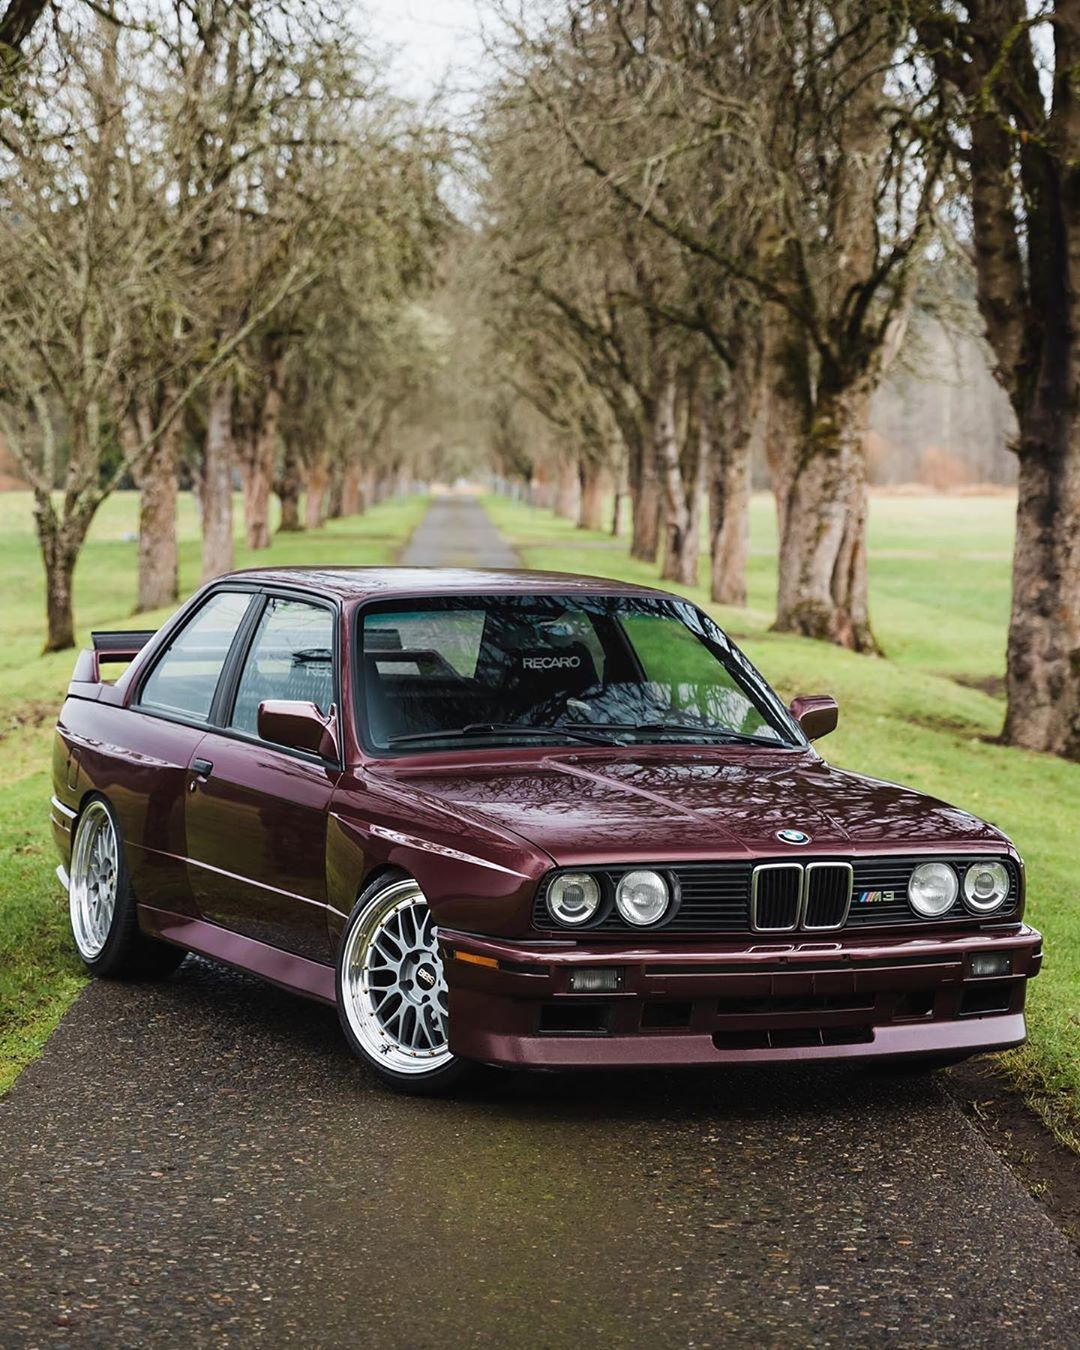 57 6 Tys Otmetok Nravitsya 243 Kommentariev Bmw Bmw V Instagram The Road To Perfection Is Lined With Tiny Details The F Bmw E30 Bmw E30 Coupe Bmw M3